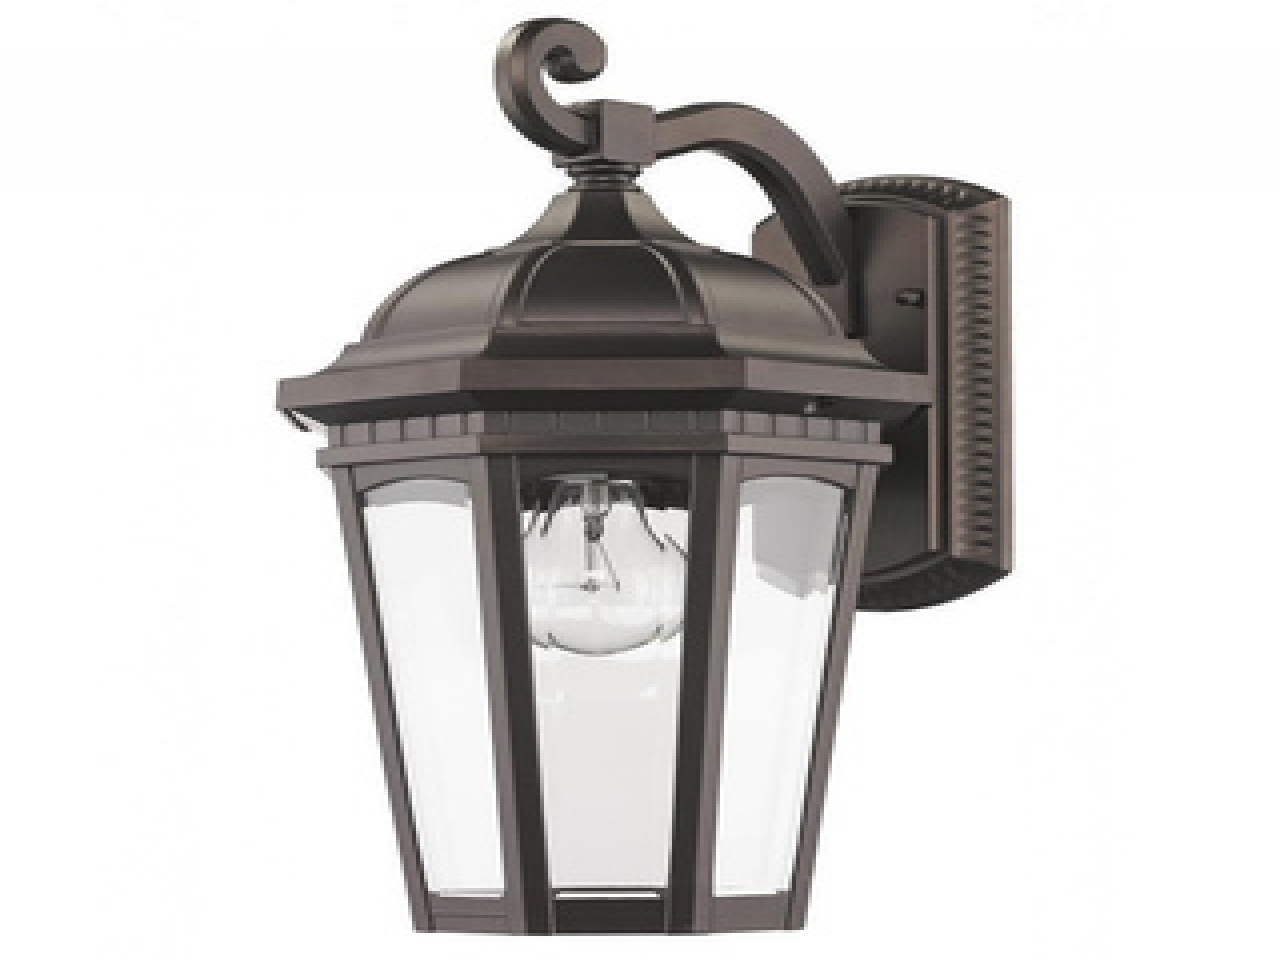 Outdoor Wall Mounted Lighting Inside Most Popular Light : Lantern Outdoor Wall Mount Lights Simple White Decoration (View 11 of 20)